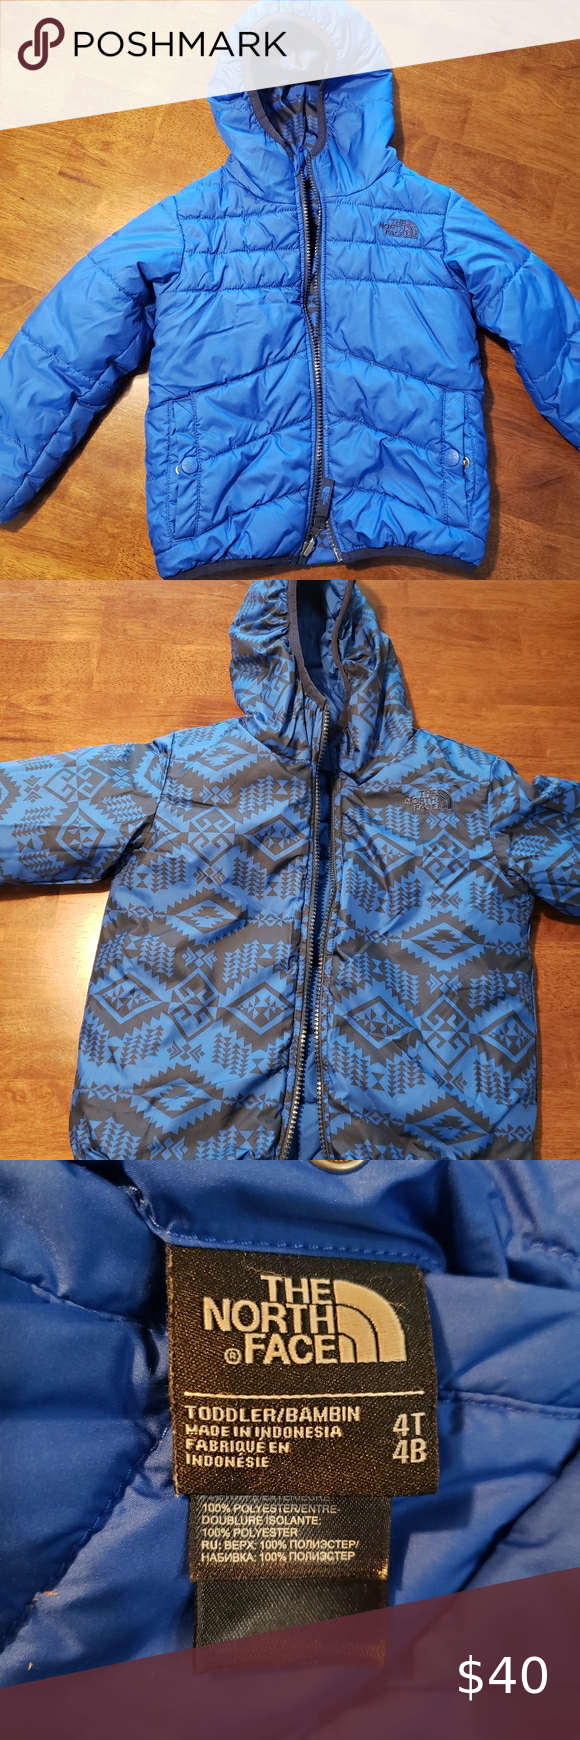 4t Reversible Northface Perrito Winter Jac The North Face North Face Jacket Clothes Design [ 1740 x 580 Pixel ]